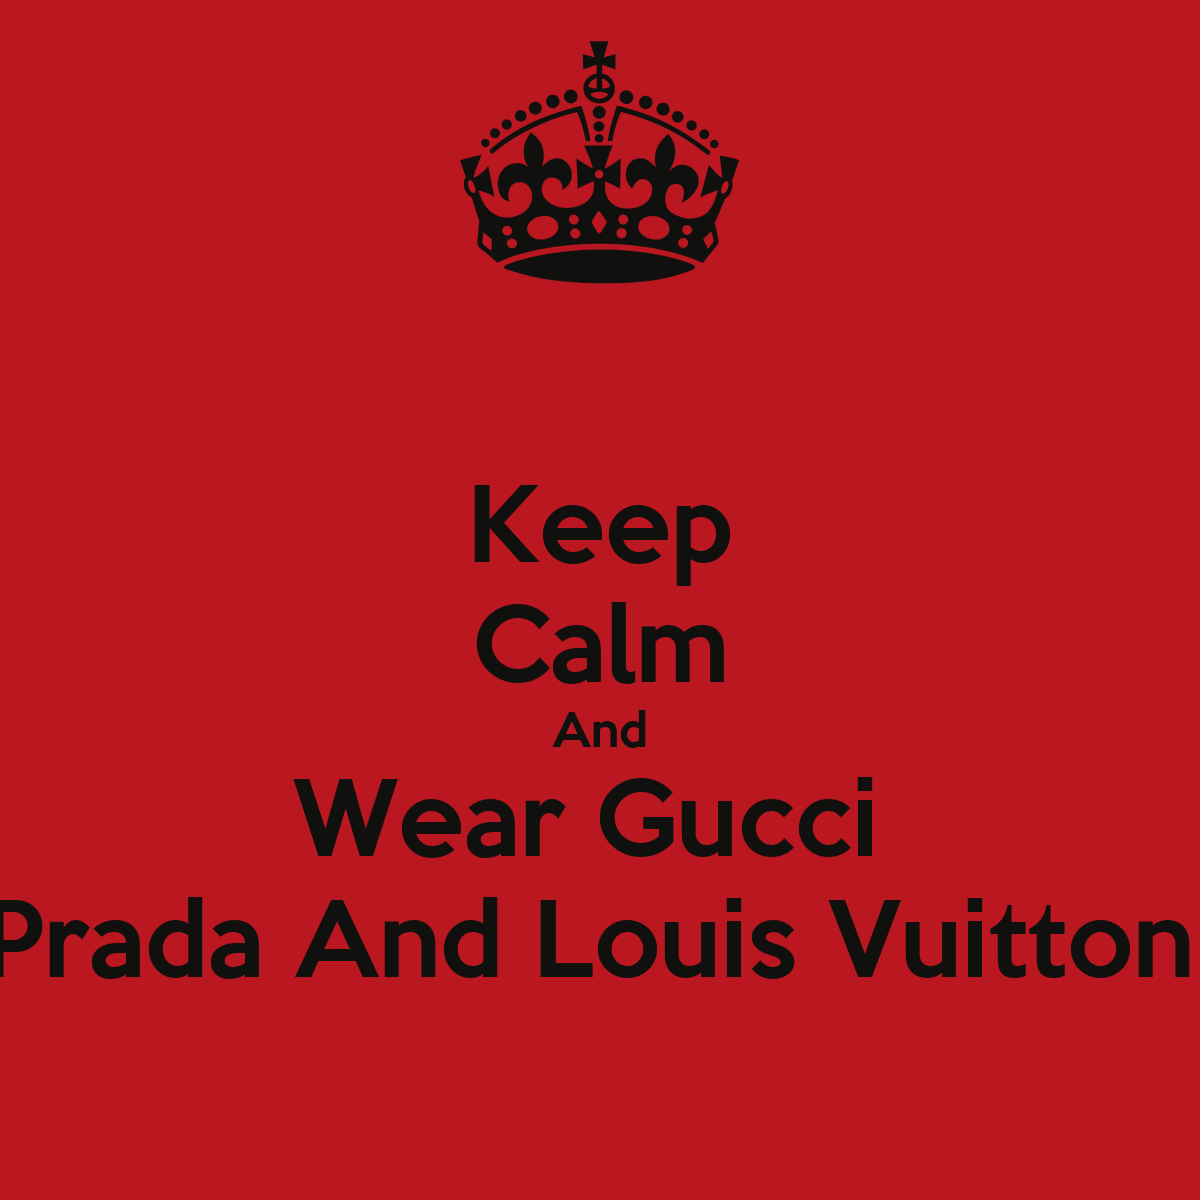 846beb2613d Keep calm and wear gucci prada and louis vuitton poster bury png 1200x1200 Keep  calm gucci